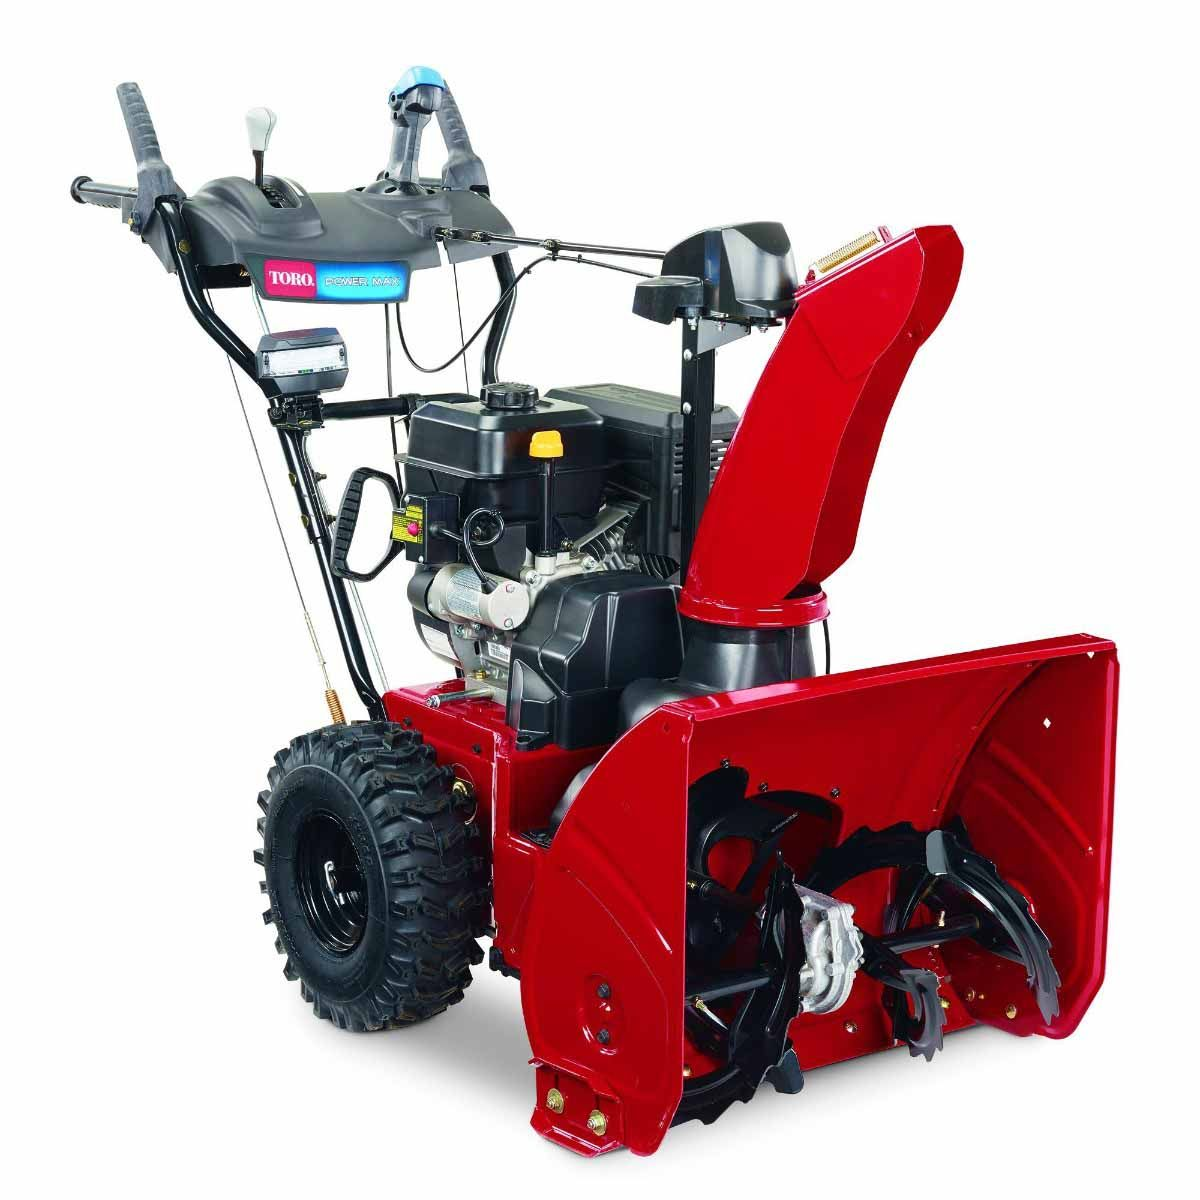 Toro 37799 Power Max 826 OXE Two-Stage Electric Start Snowblower